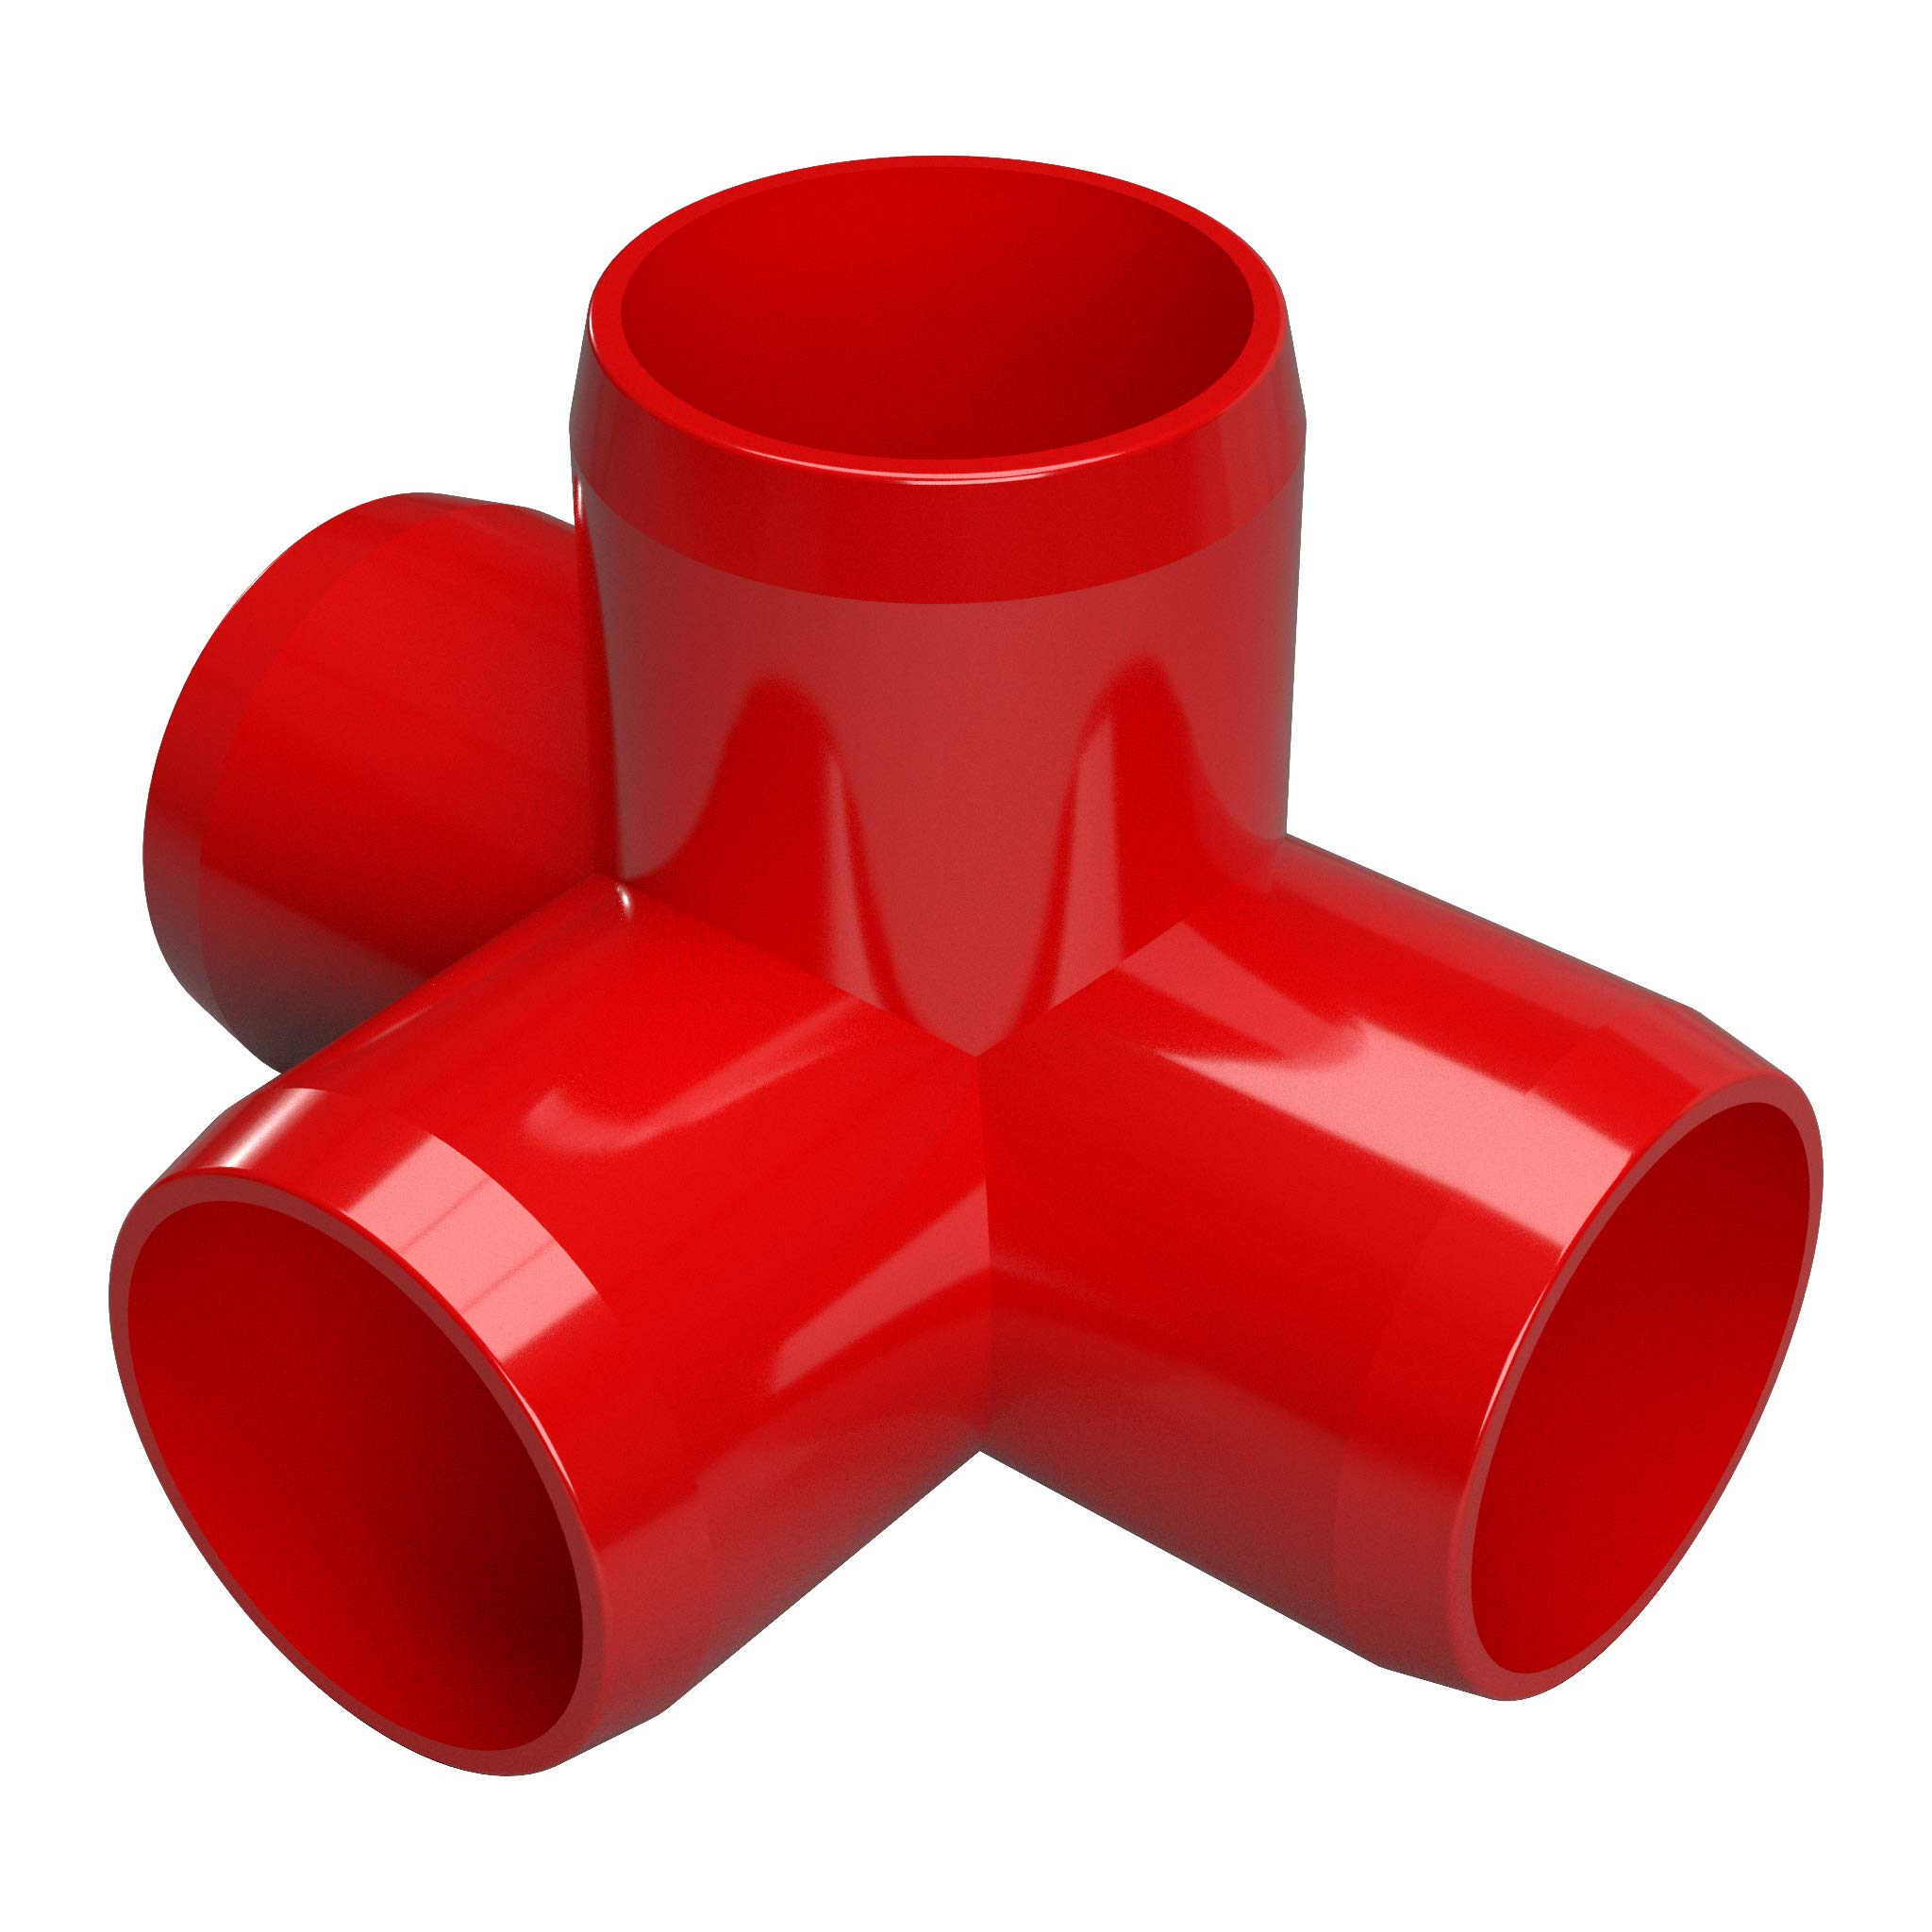 FORMUFIT F1144WT-RD-4 4-Way Tee PVC Fitting, Furniture Grade, 1-1/4'' Size, Red (Pack of 4)